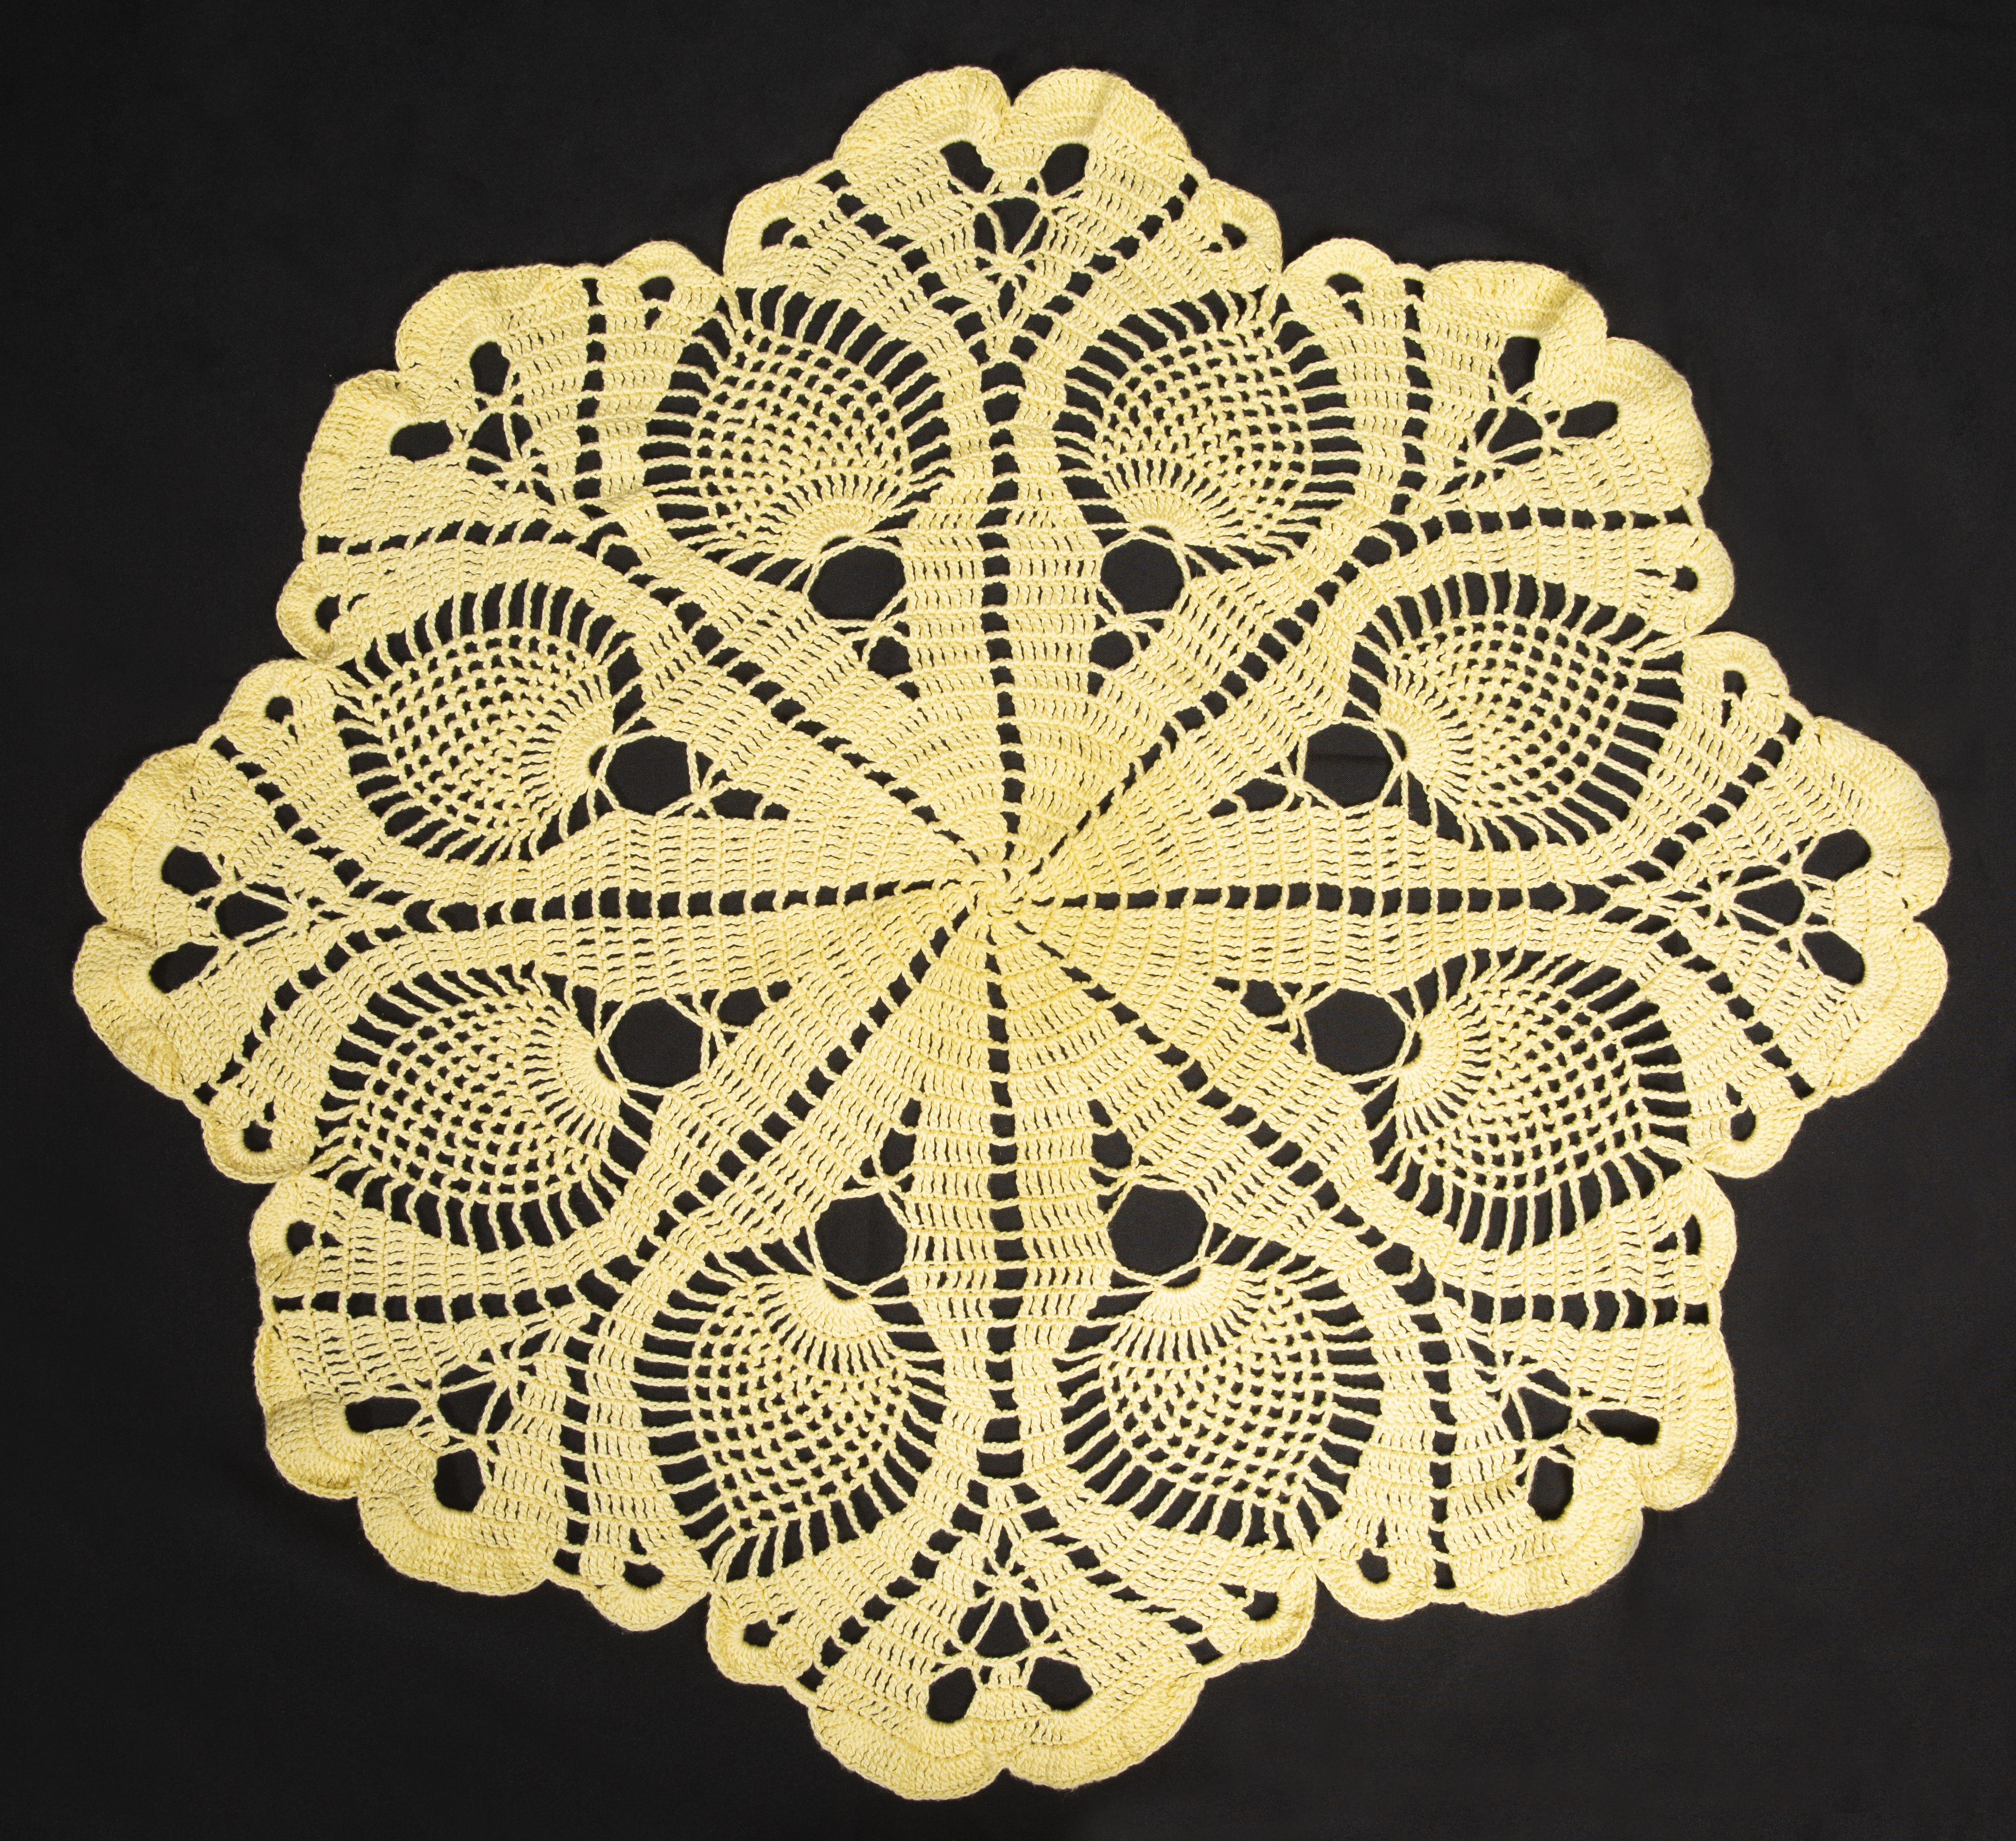 Needlework - Spring Time - image of crochet doily with pinapple motif